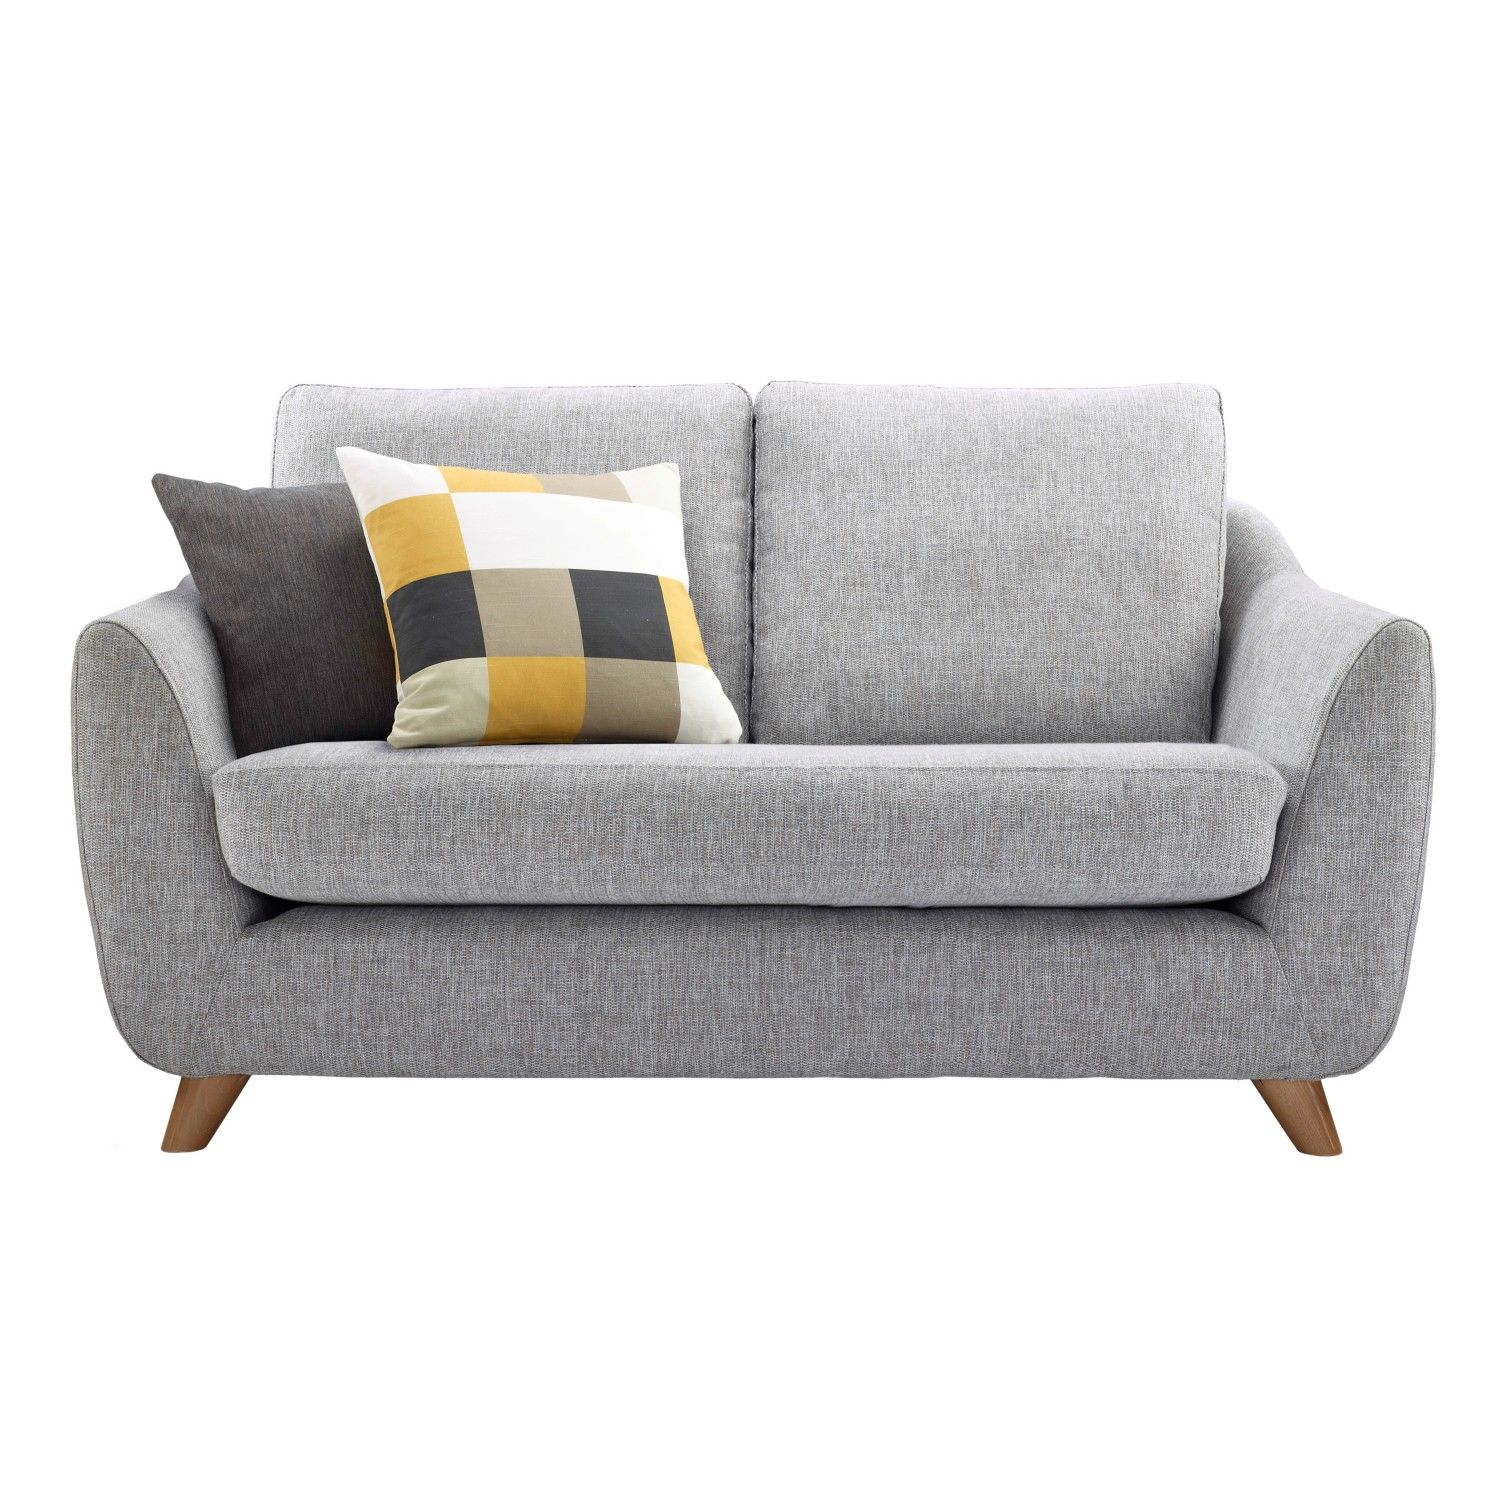 loveseats for small spaces   Cheap Small Sofa Decoration     loveseats for small spaces   Cheap Small Sofa Decoration   Fascinating Grey  Legged Cheap Small Sofa